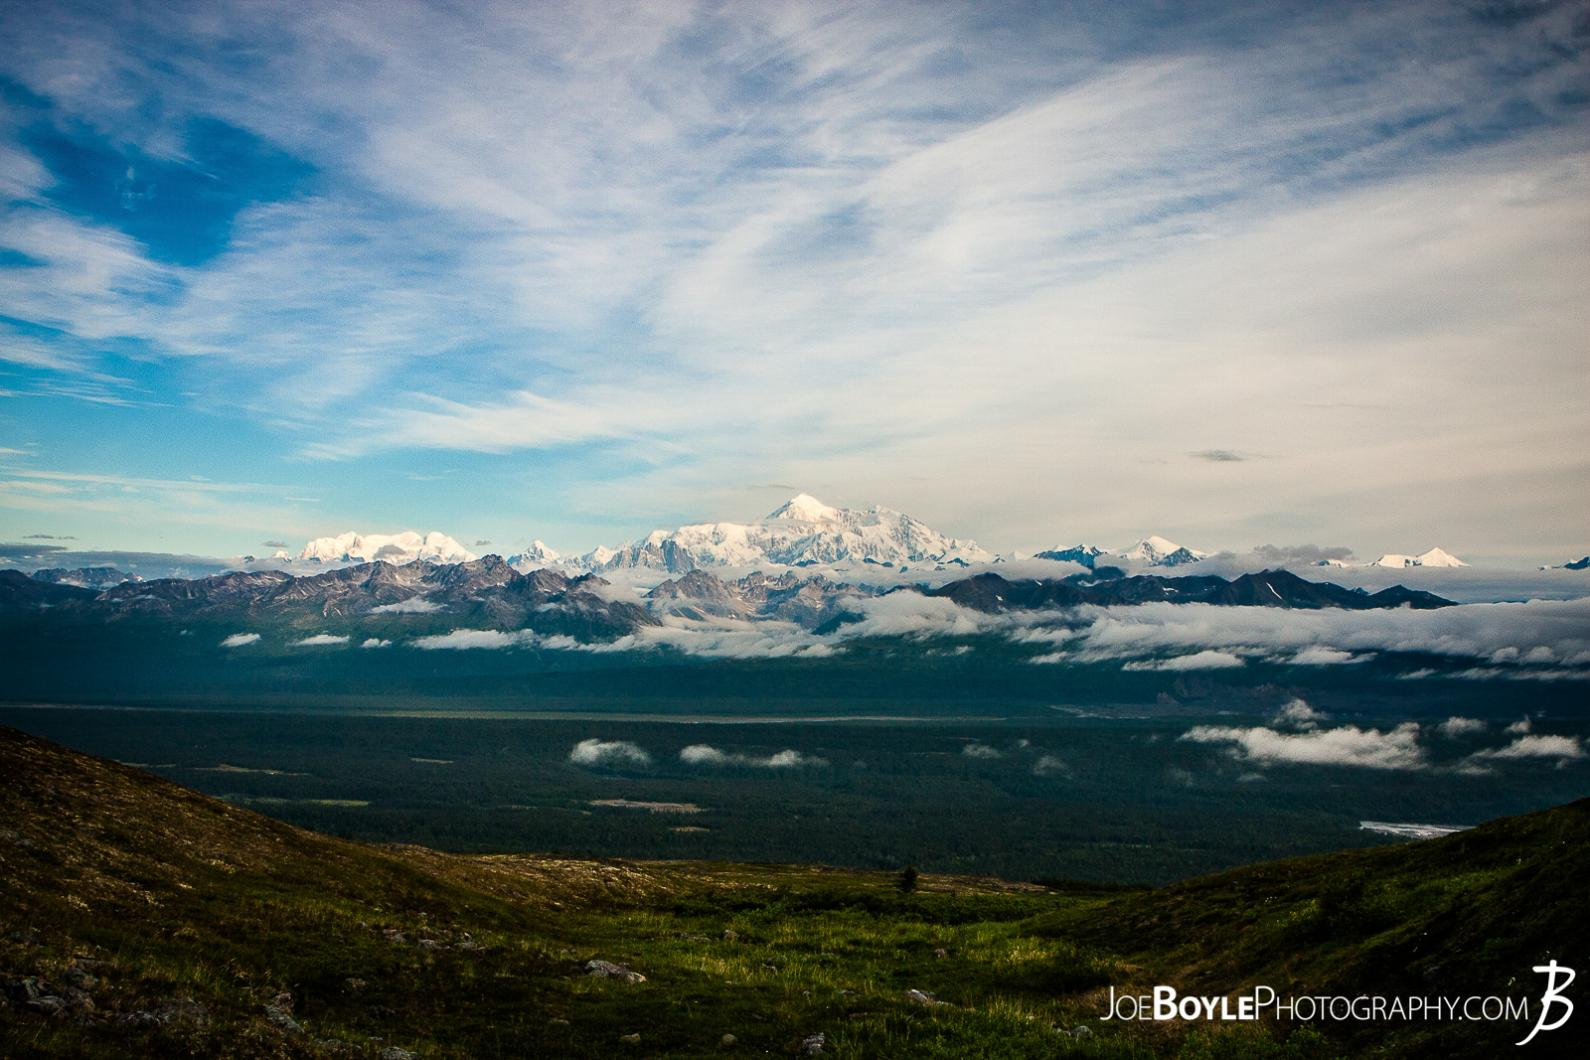 mount-denali-mckinley-with-clouds-and-blue-sky-from-kesugi-ridge-trail